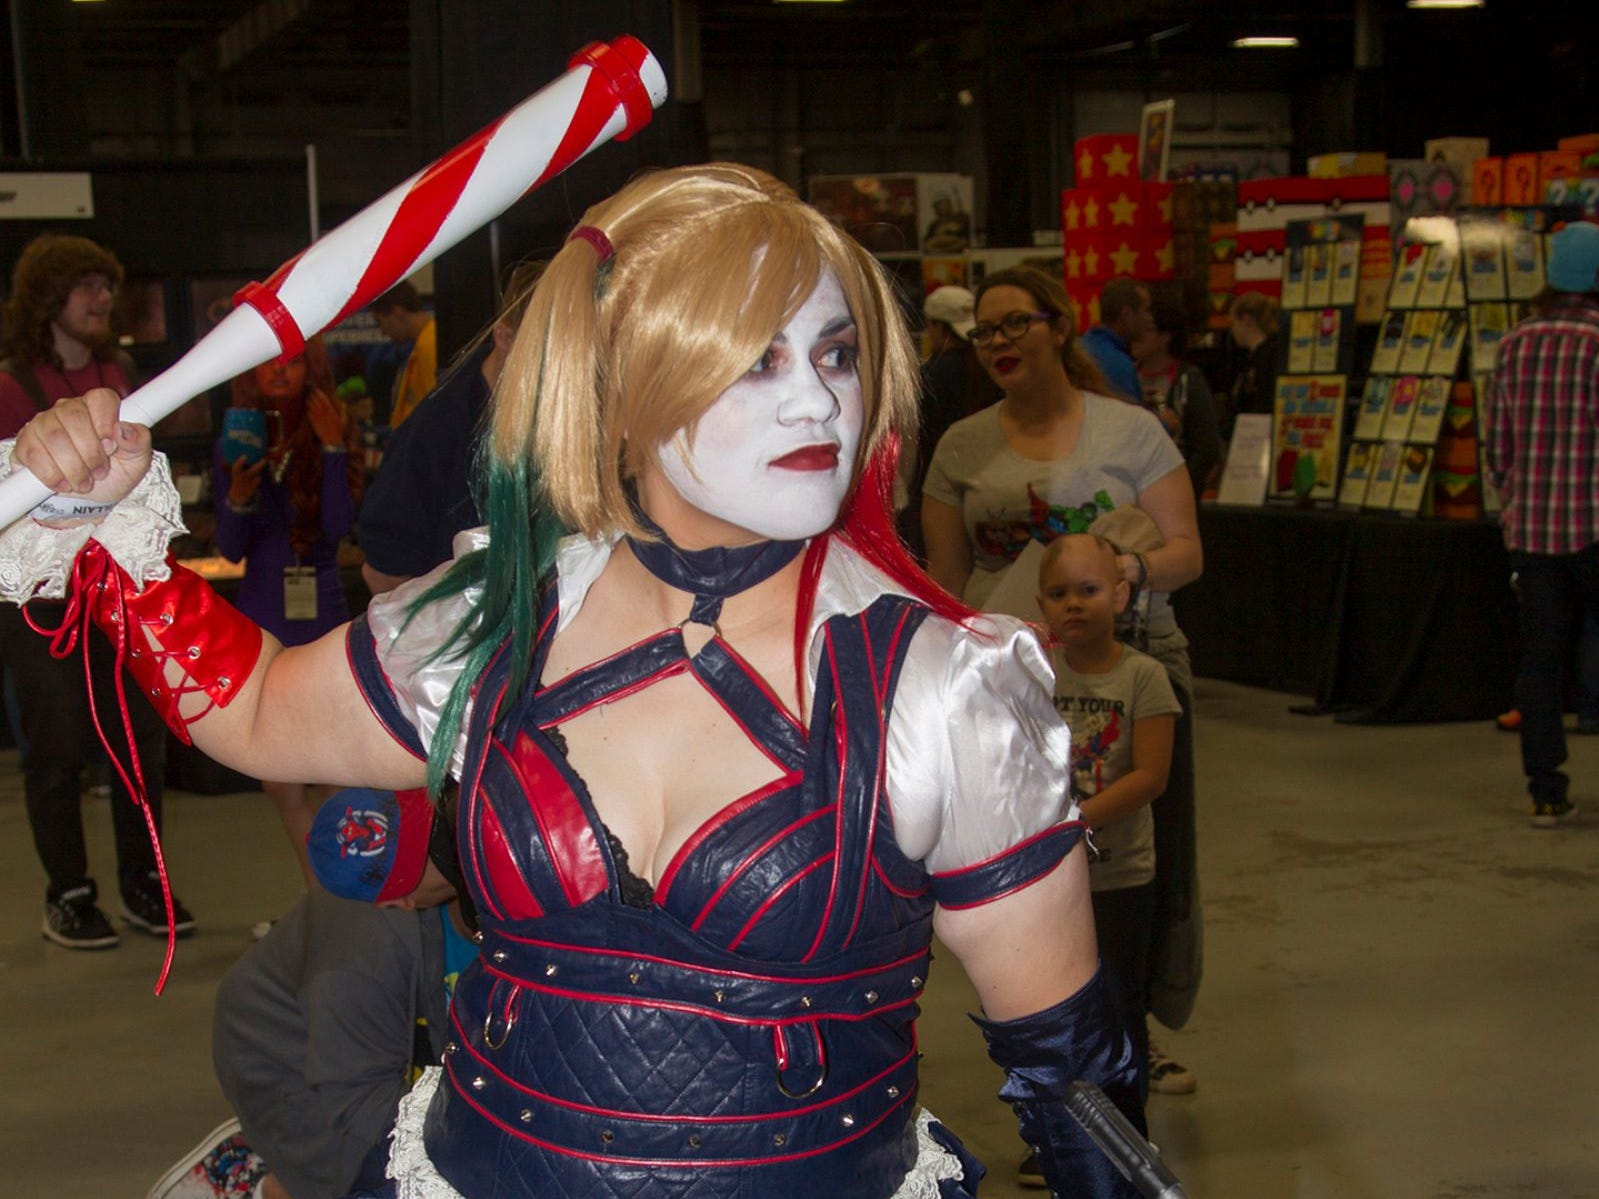 Rome as Harley Quinn. The 2018 Heroes and Villains Fan Fest took place at the New Jersey Convention & Expo Center. 09/09/2018